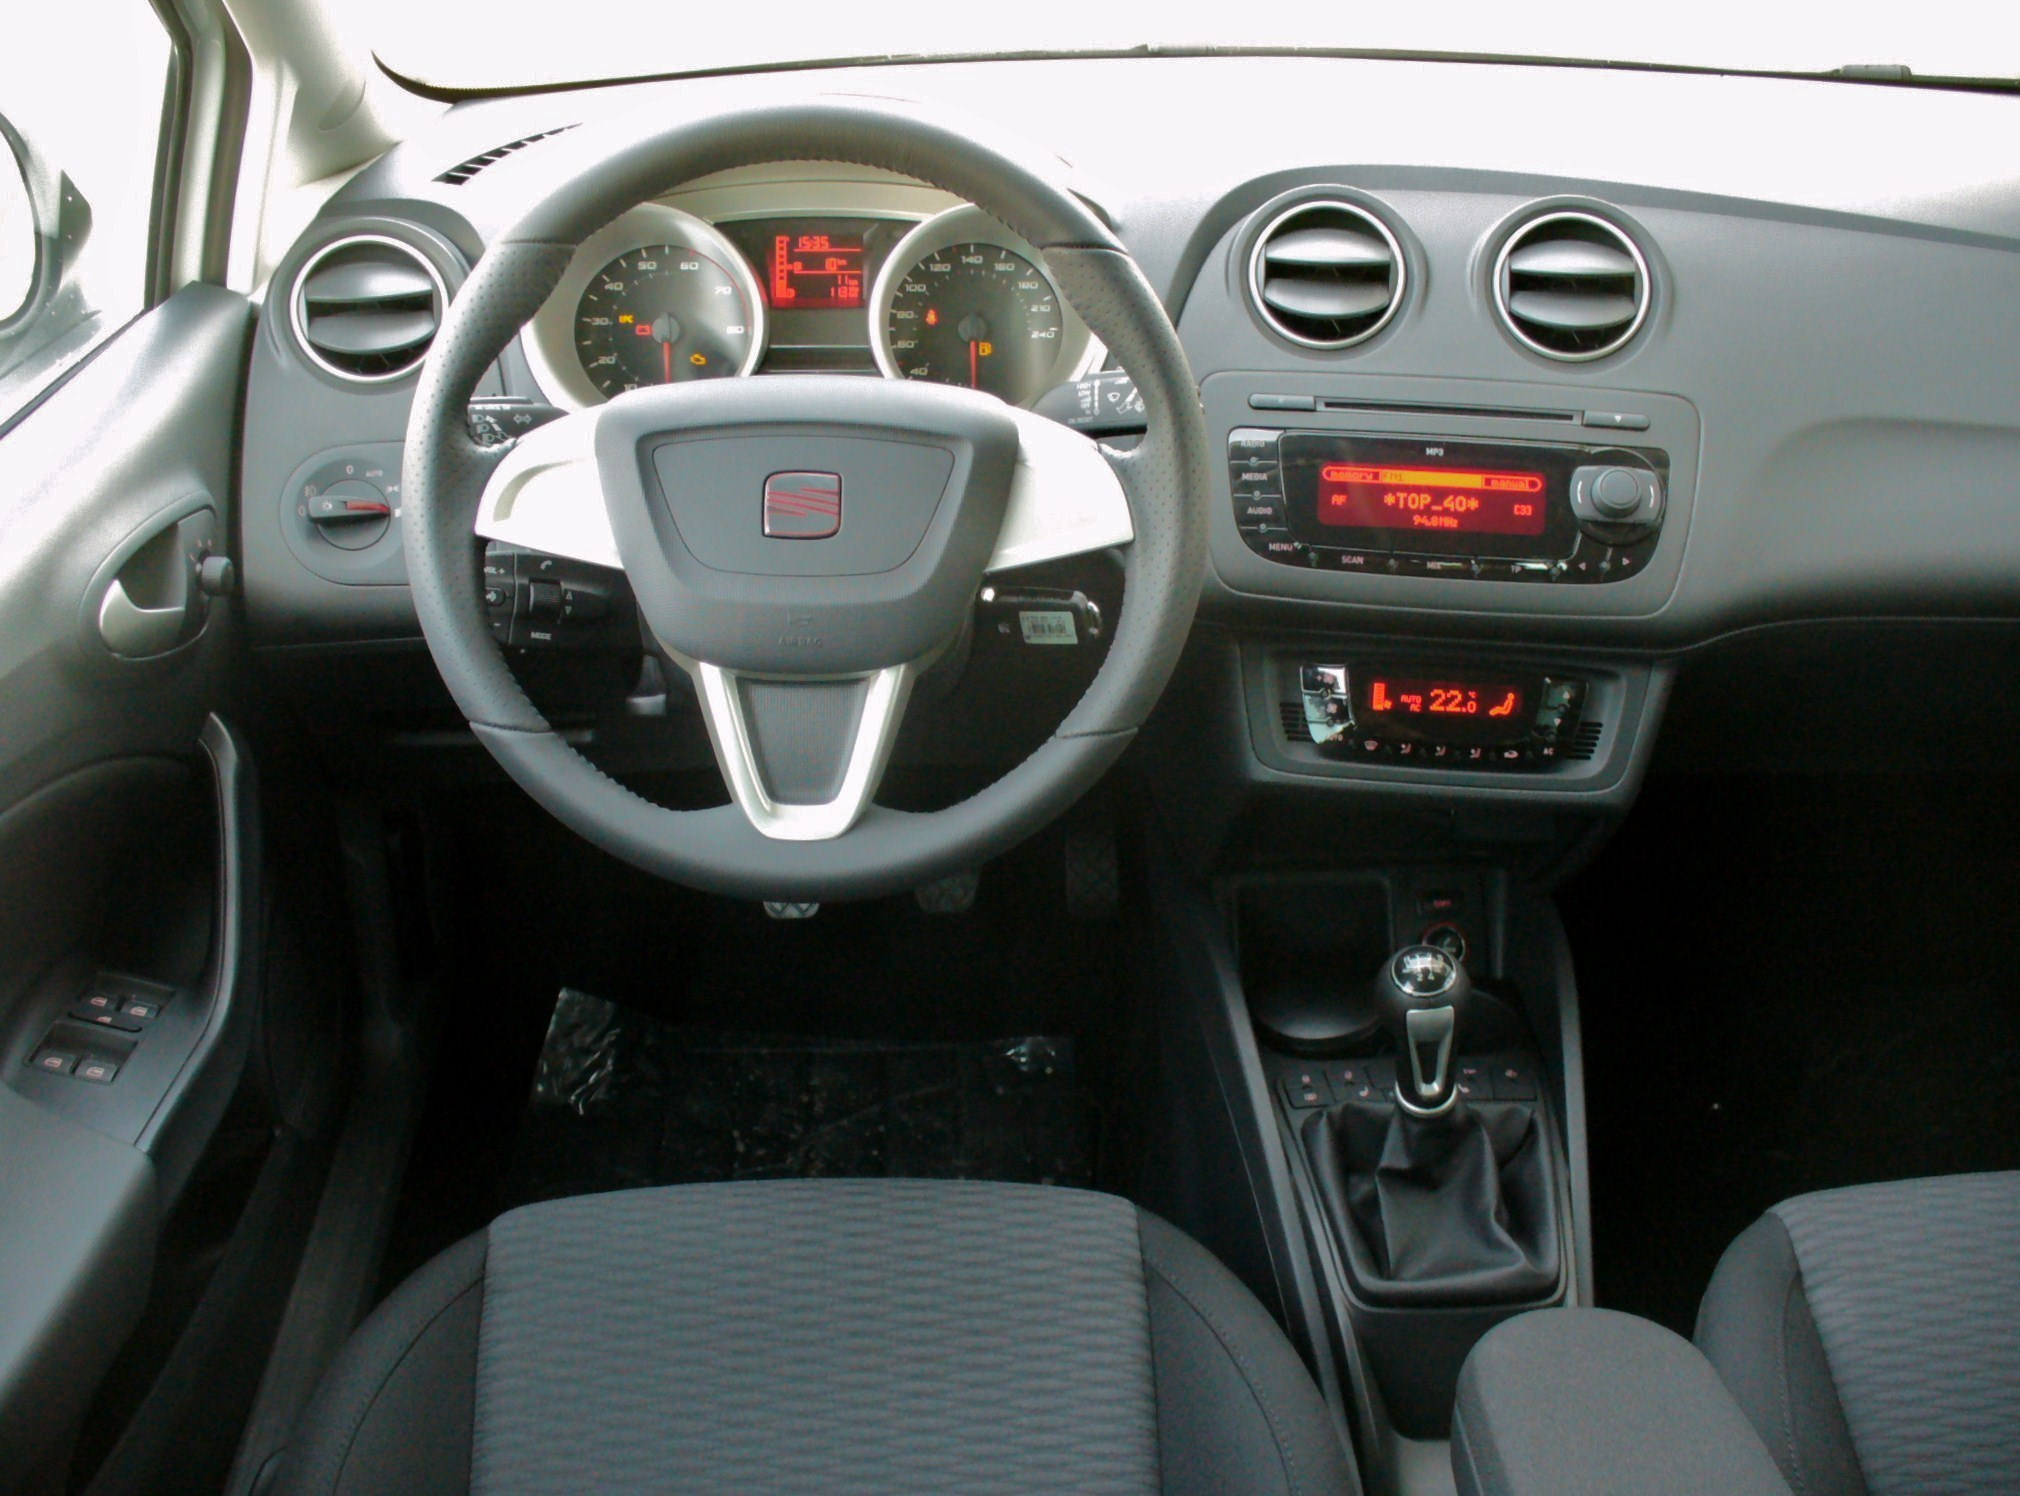 file seat ibiza 6j st 1 2 tsi ecomotive sport candywei interieur jpg wikimedia commons. Black Bedroom Furniture Sets. Home Design Ideas